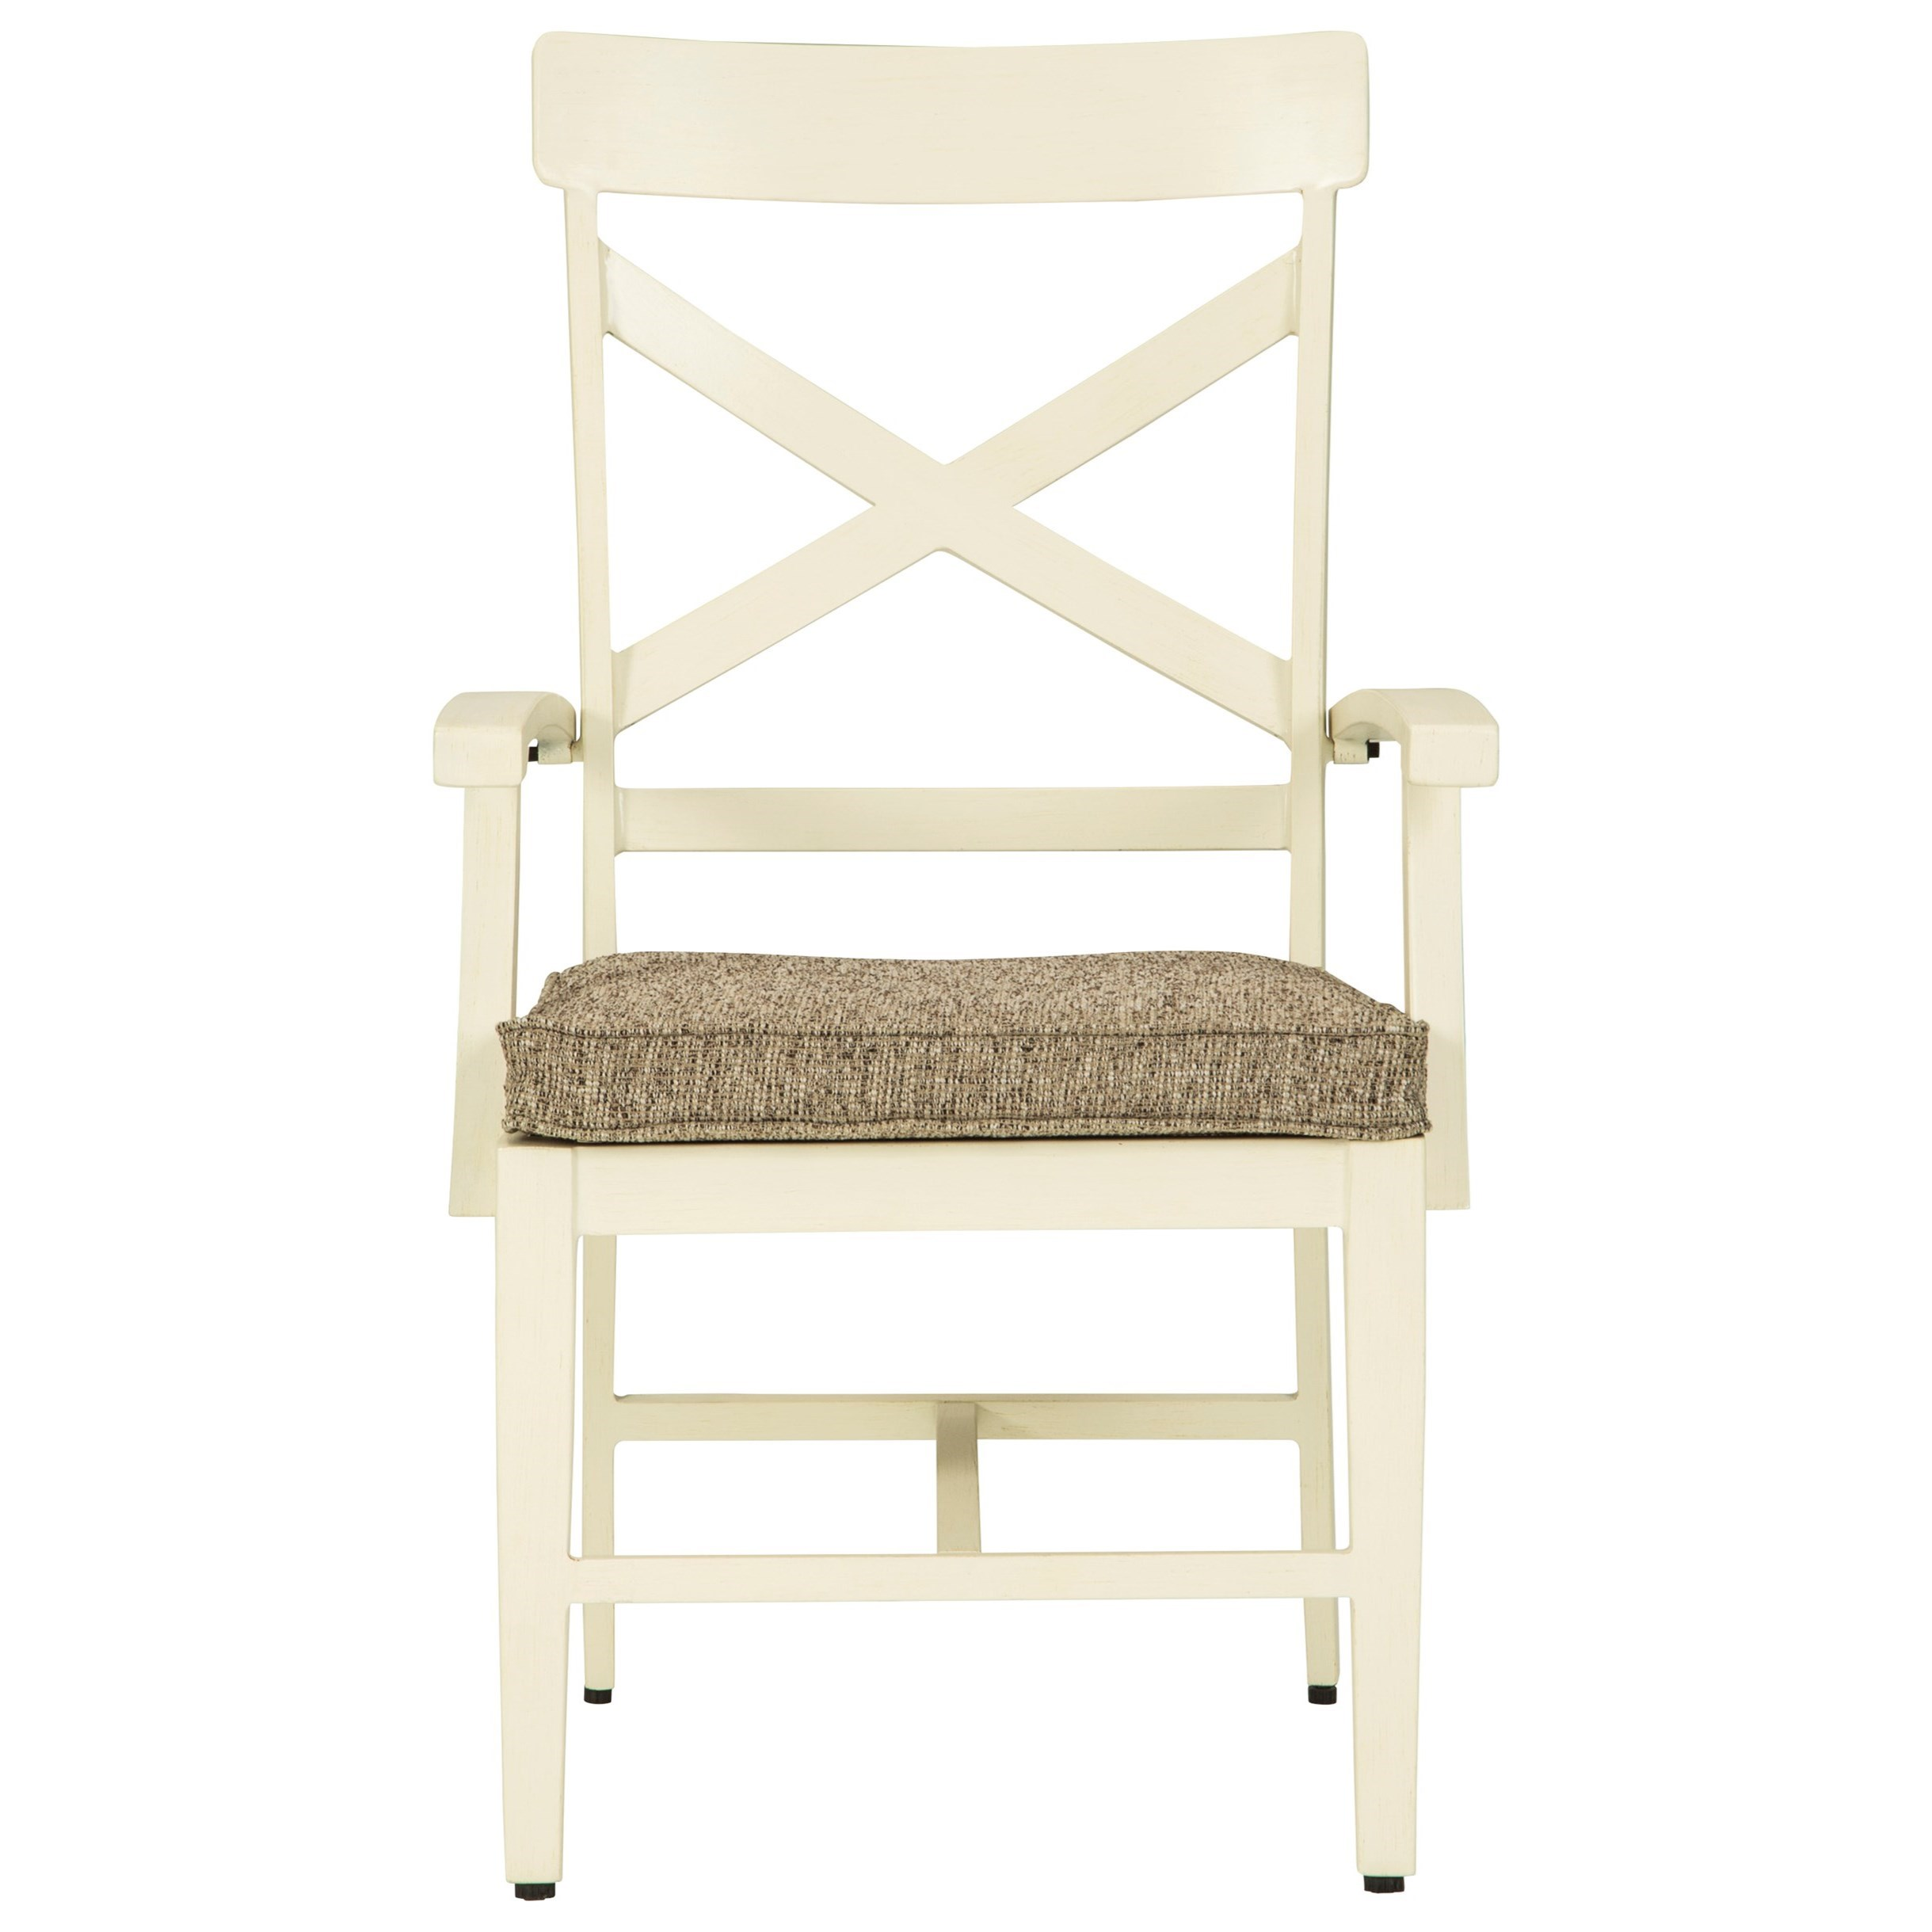 Preston Bay Set of 2 Arm Chairs with Cushions by Signature Design by Ashley at Value City Furniture